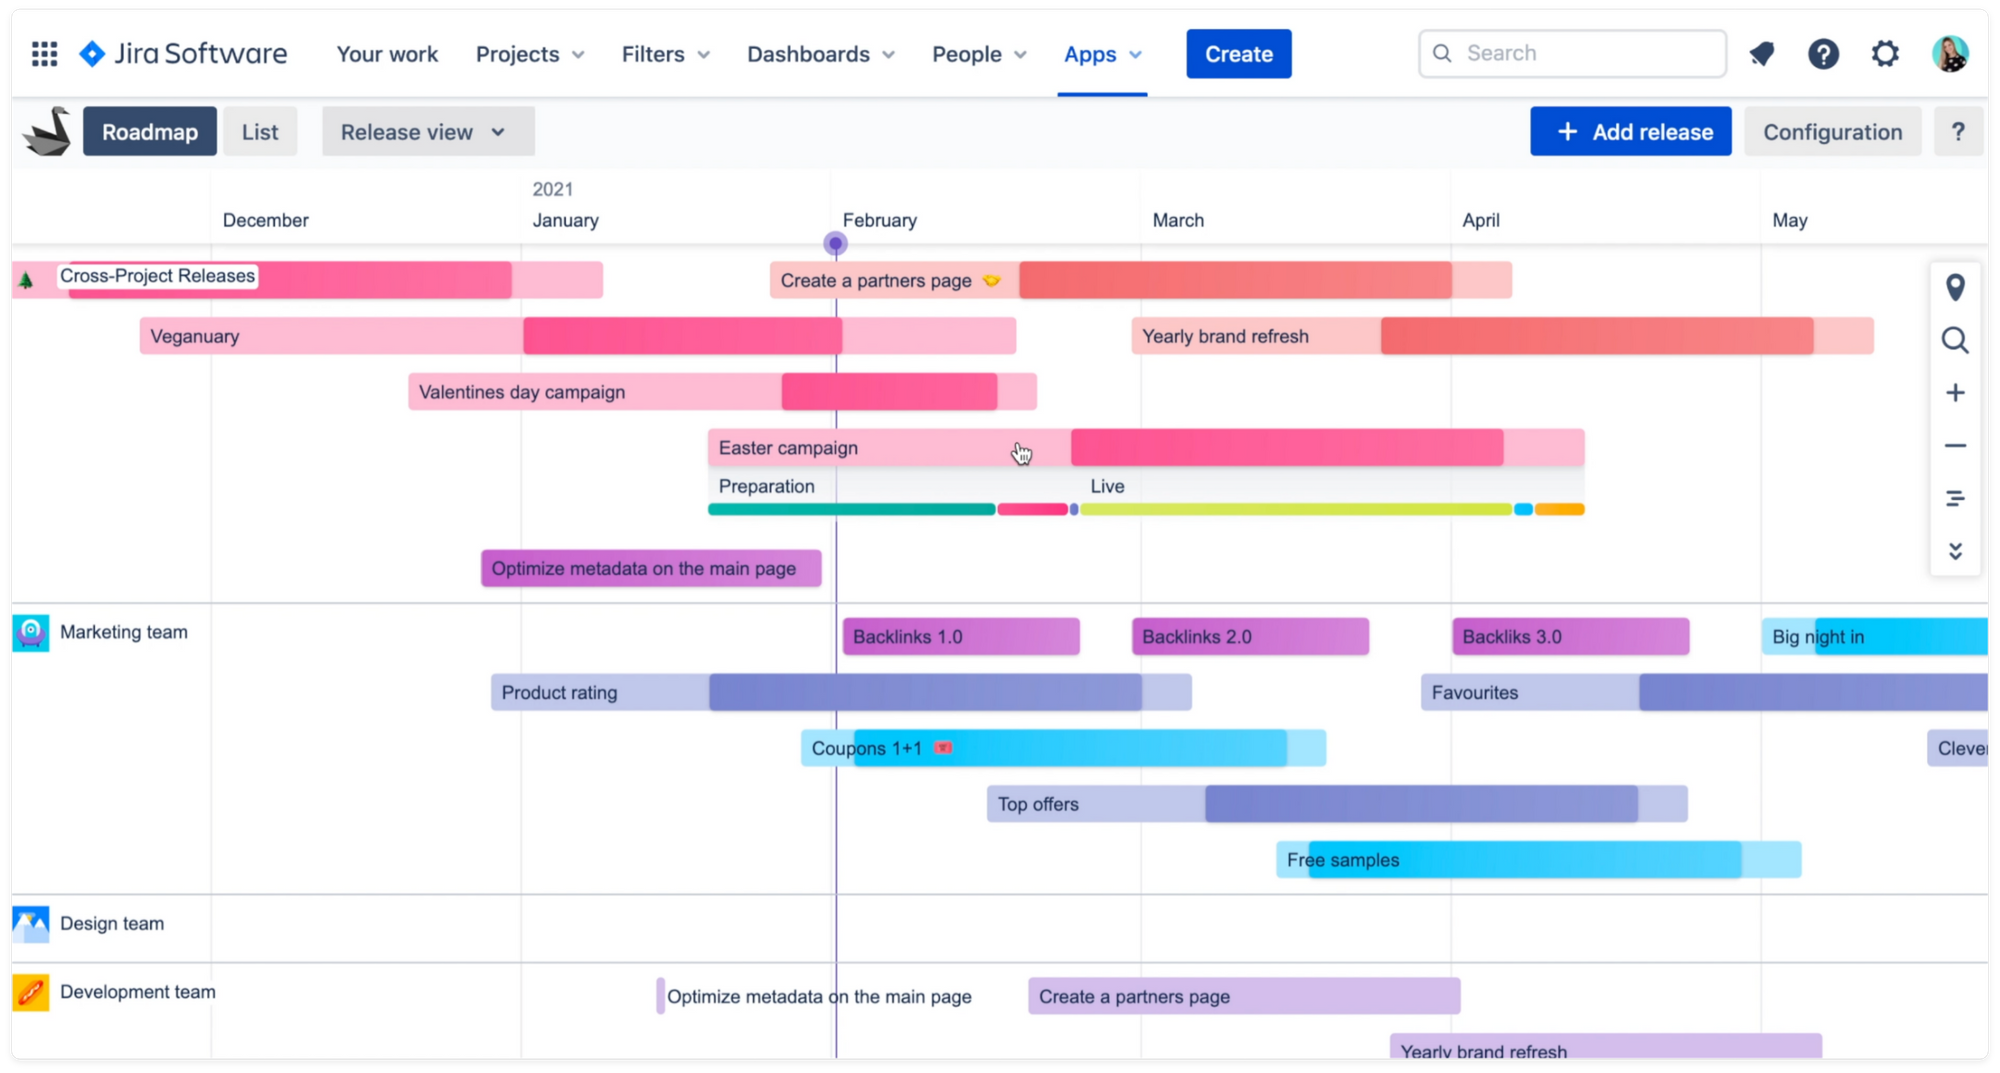 Swanly - your project, portfolio, product roadmap timeline for Jira